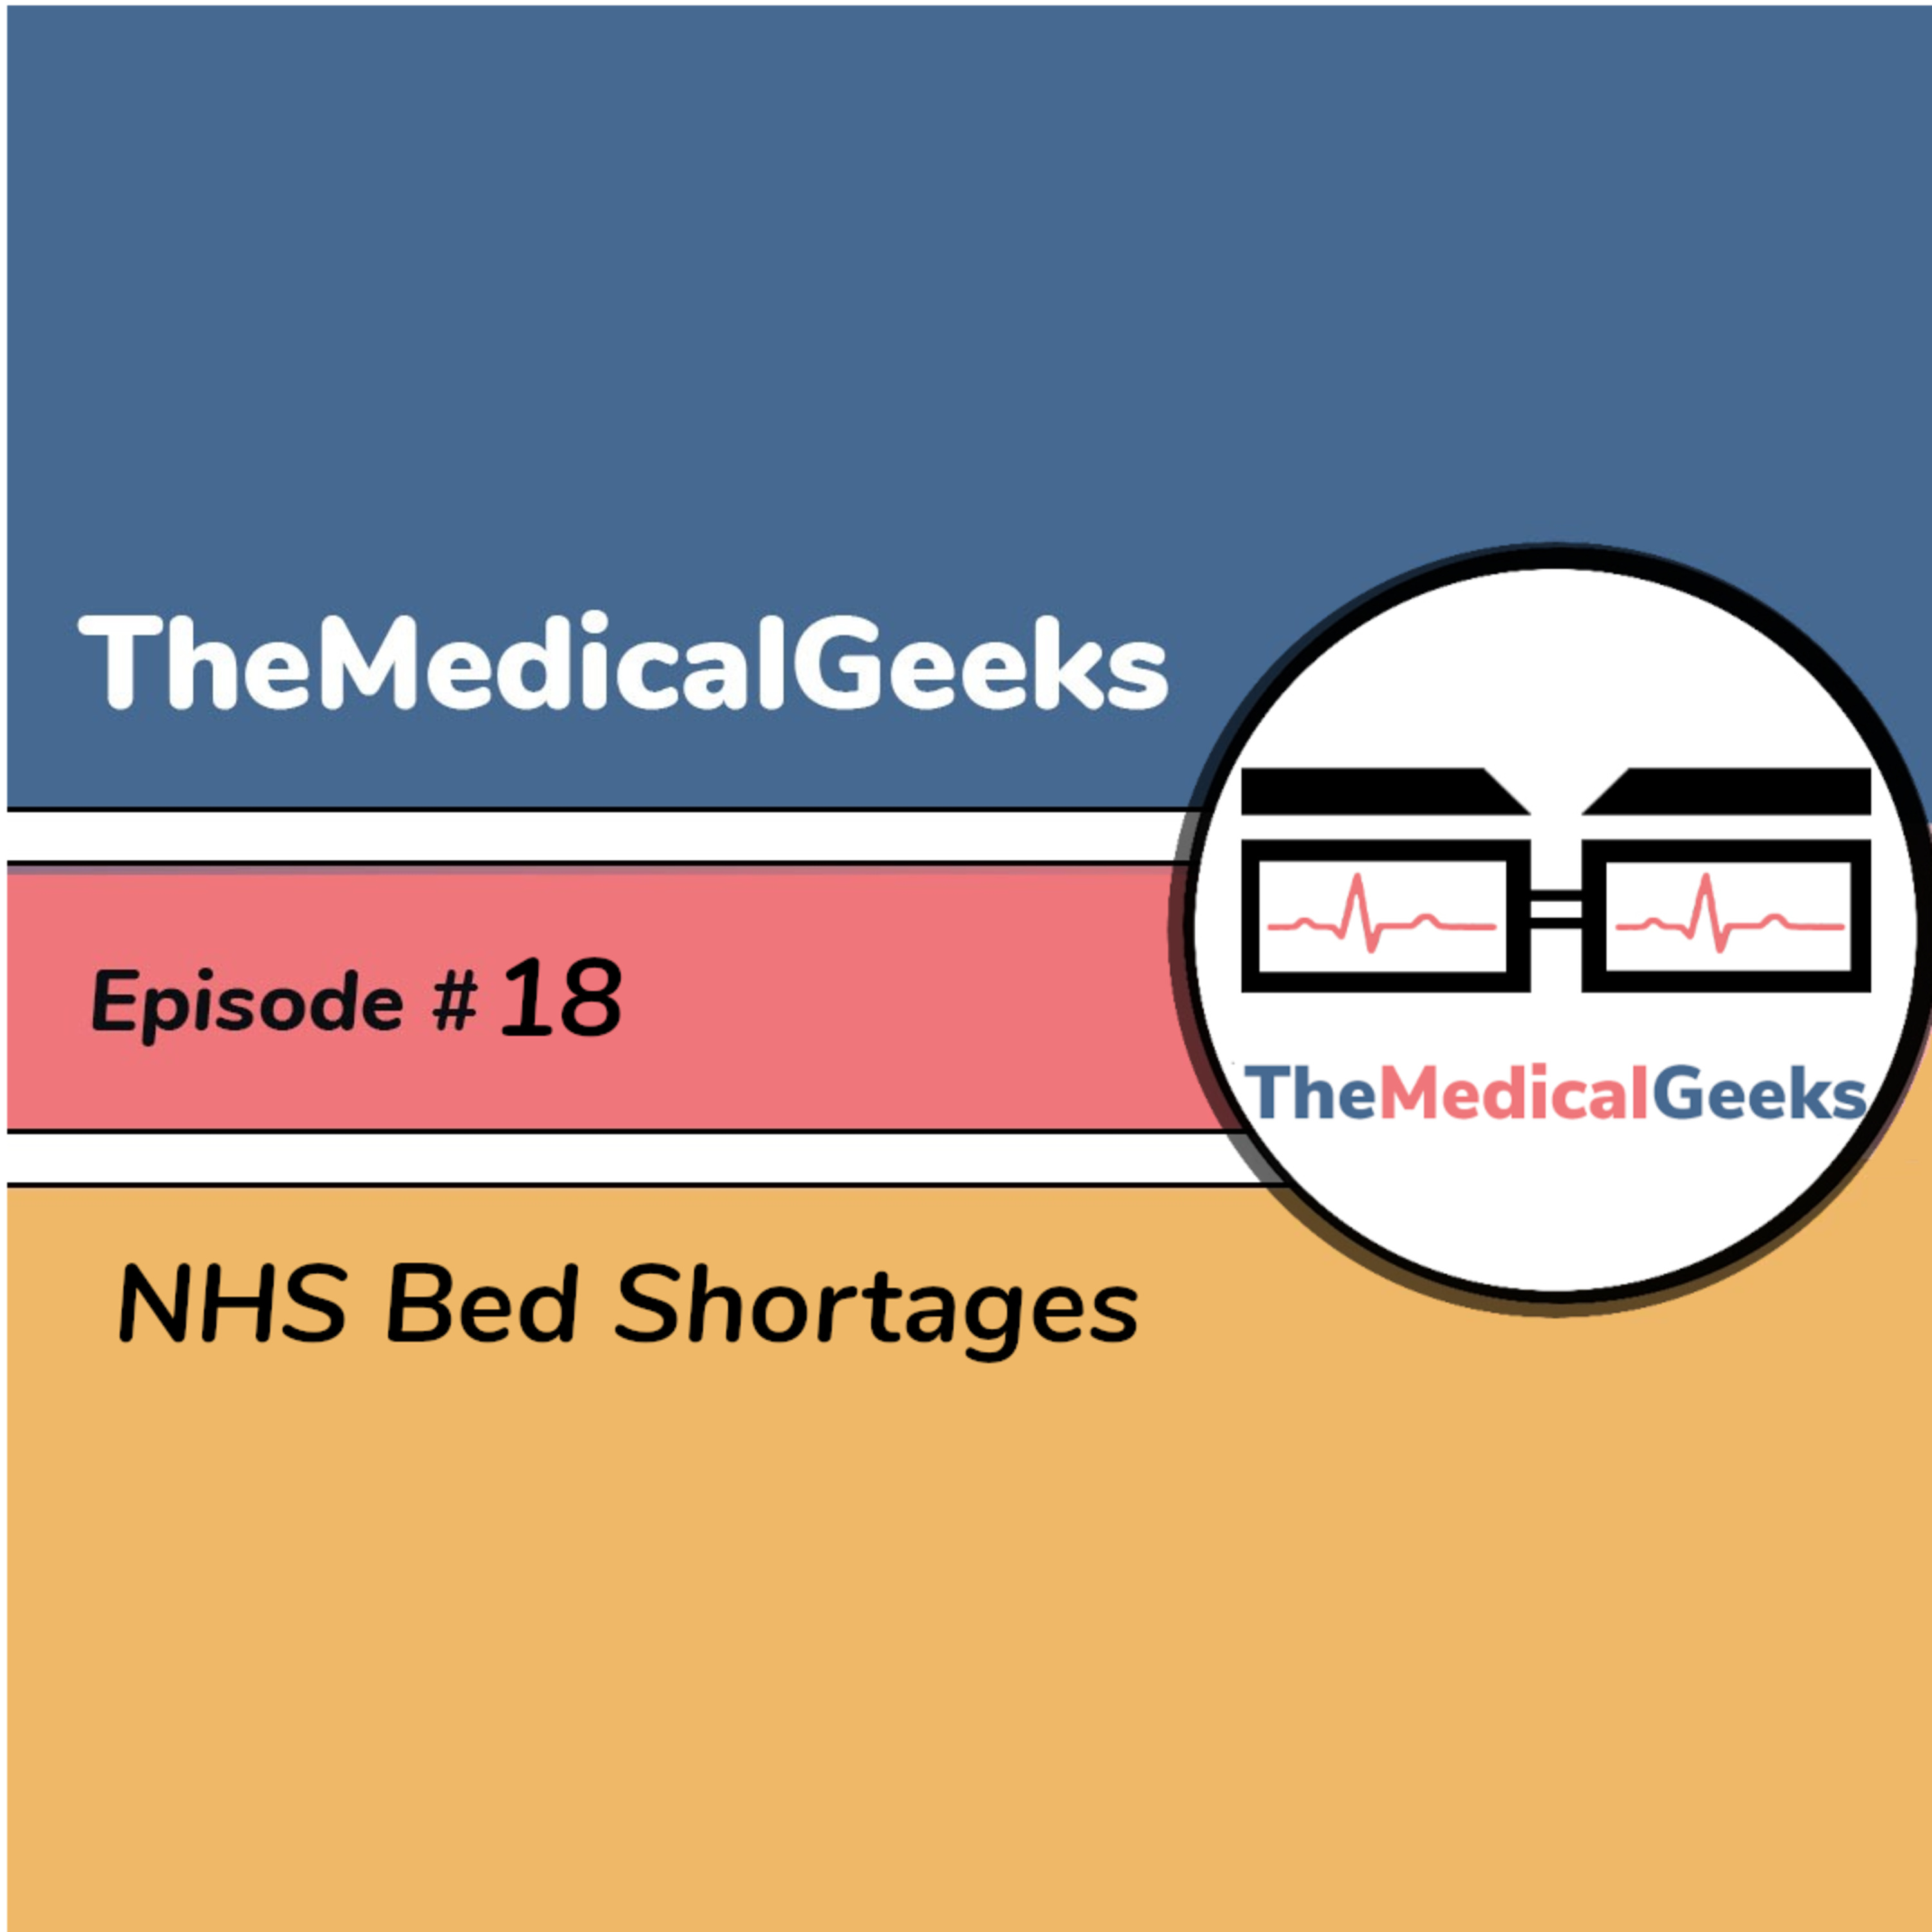 #18 Episode 18: NHS Bed Shortages